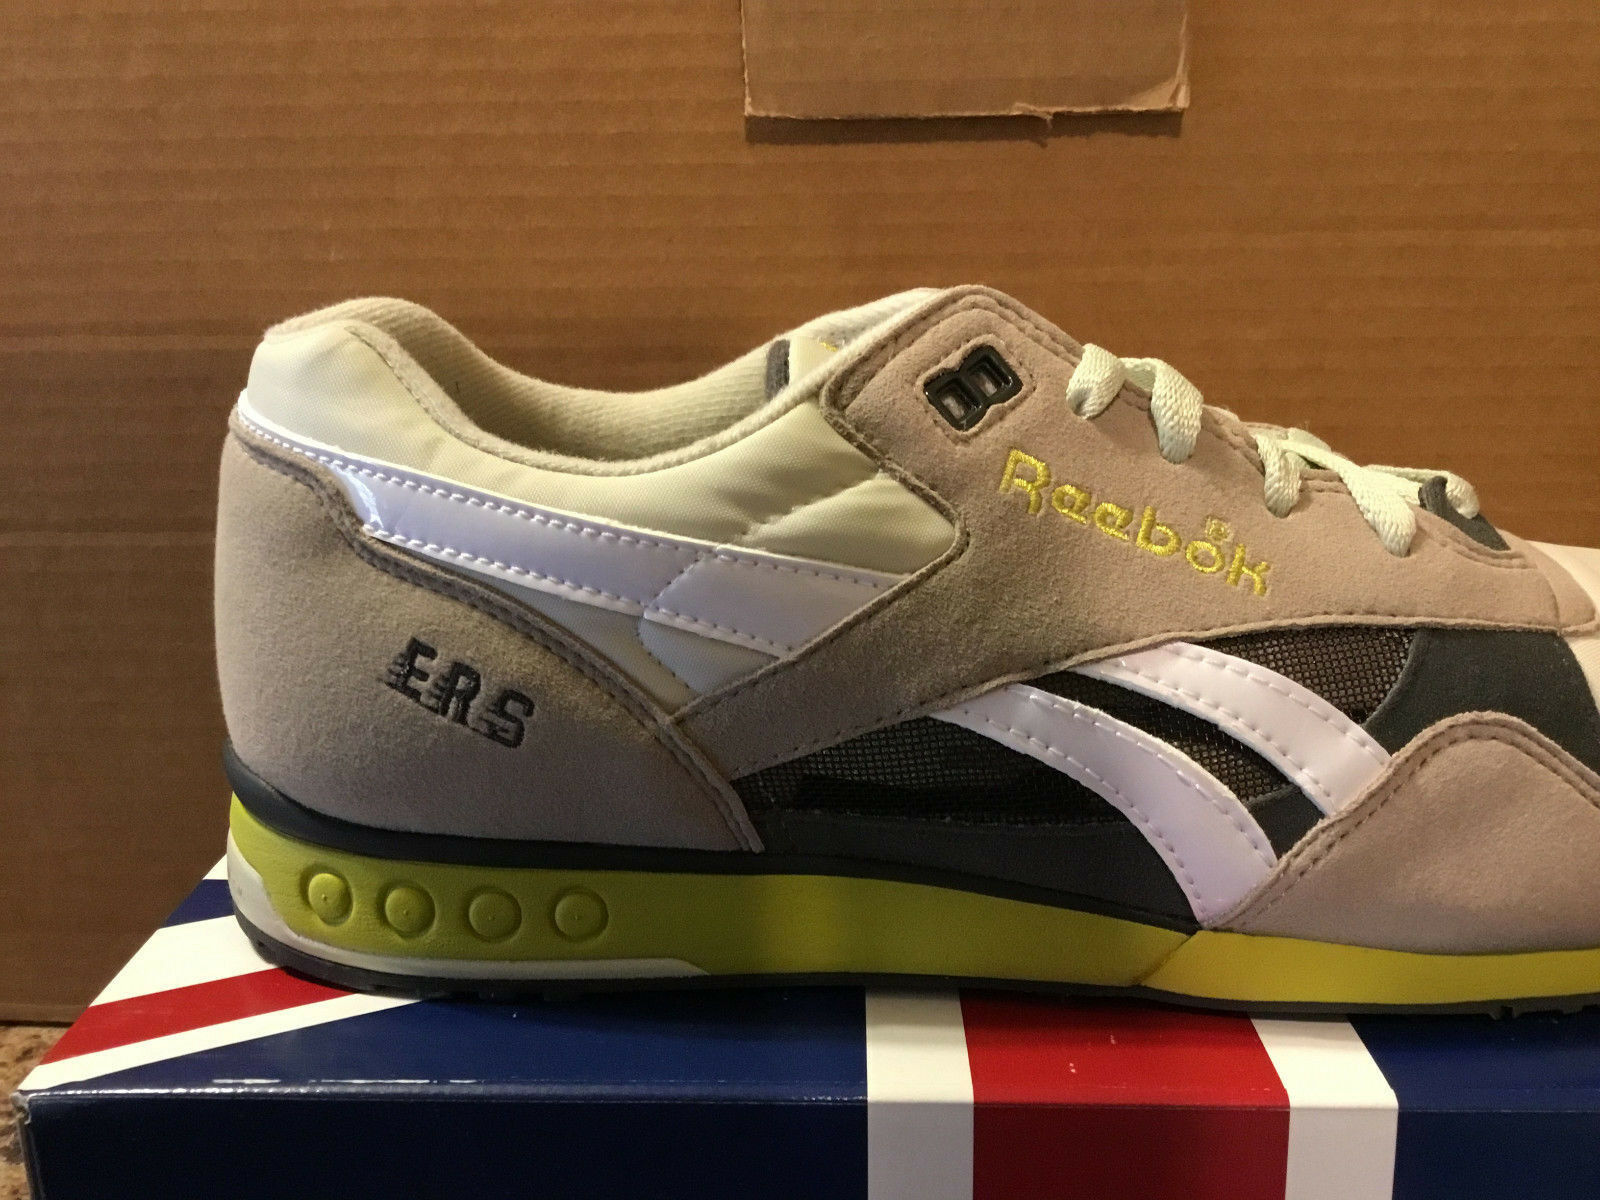 REEBOK ERS RACER style158775 hommes hommes style158775 Taille US10-VERY HARD TO FIND 9c0f1c